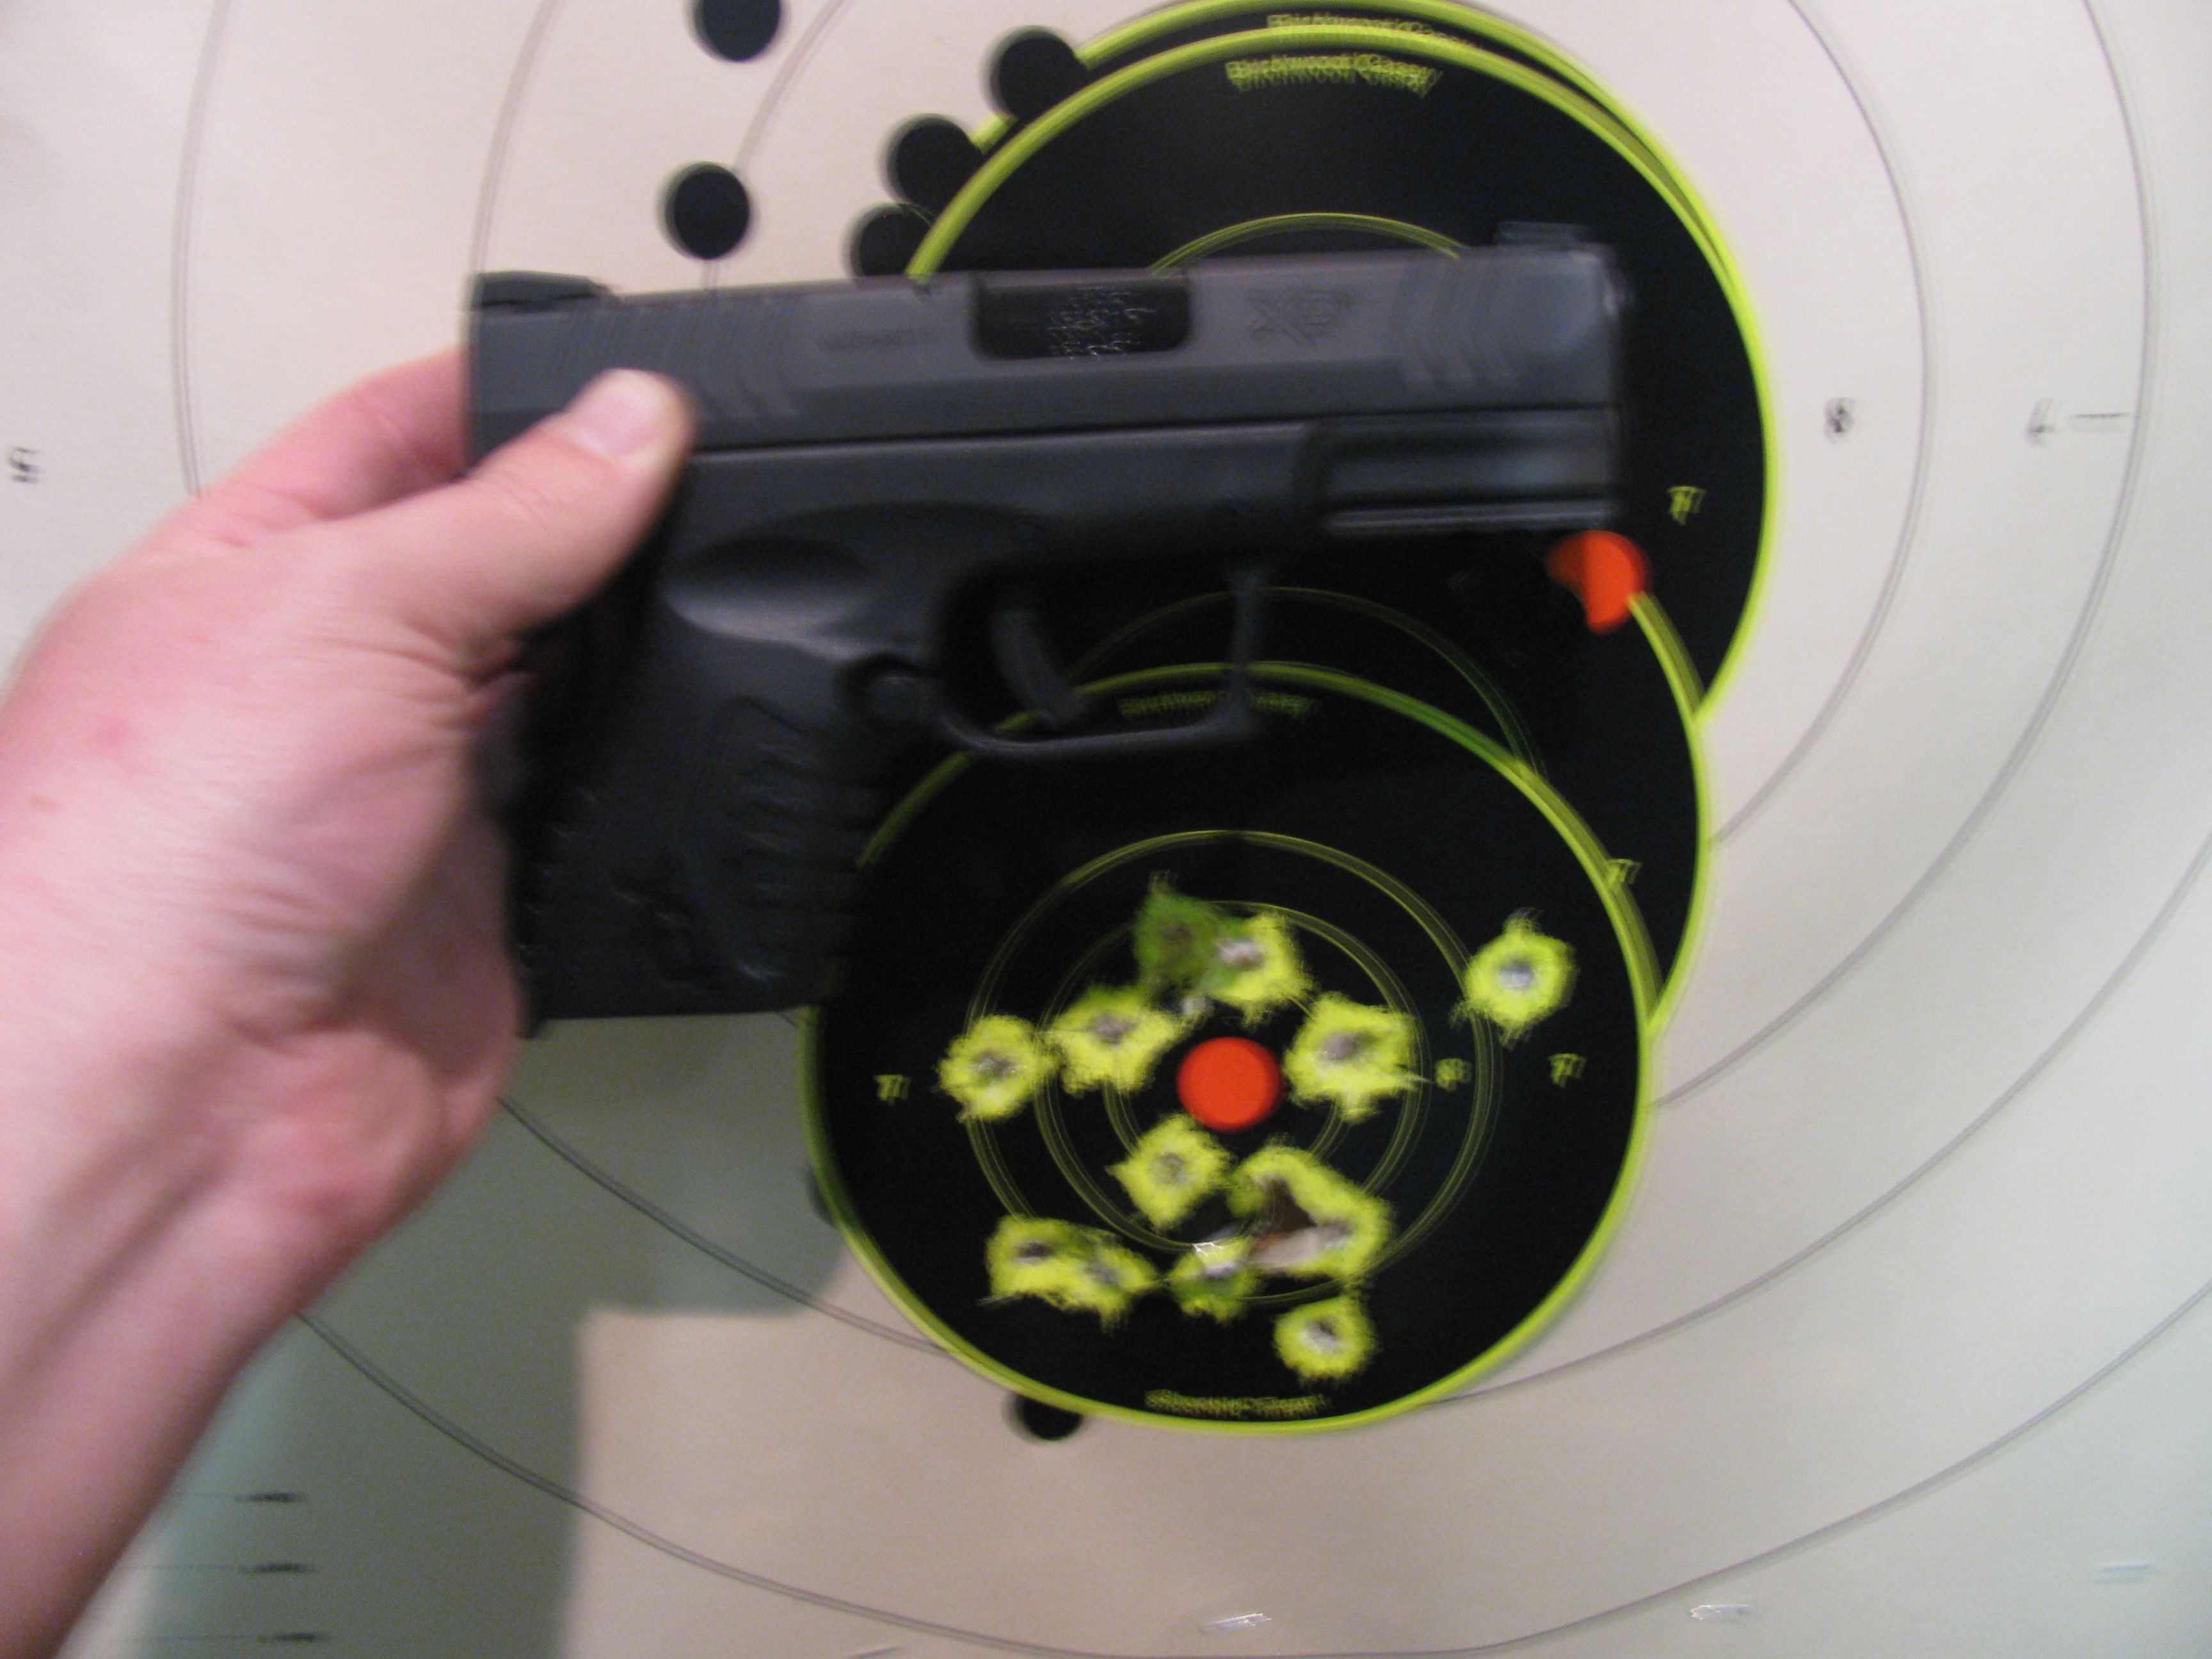 Does anyone own the new xdm 45 compact 3.8? - XD Forum